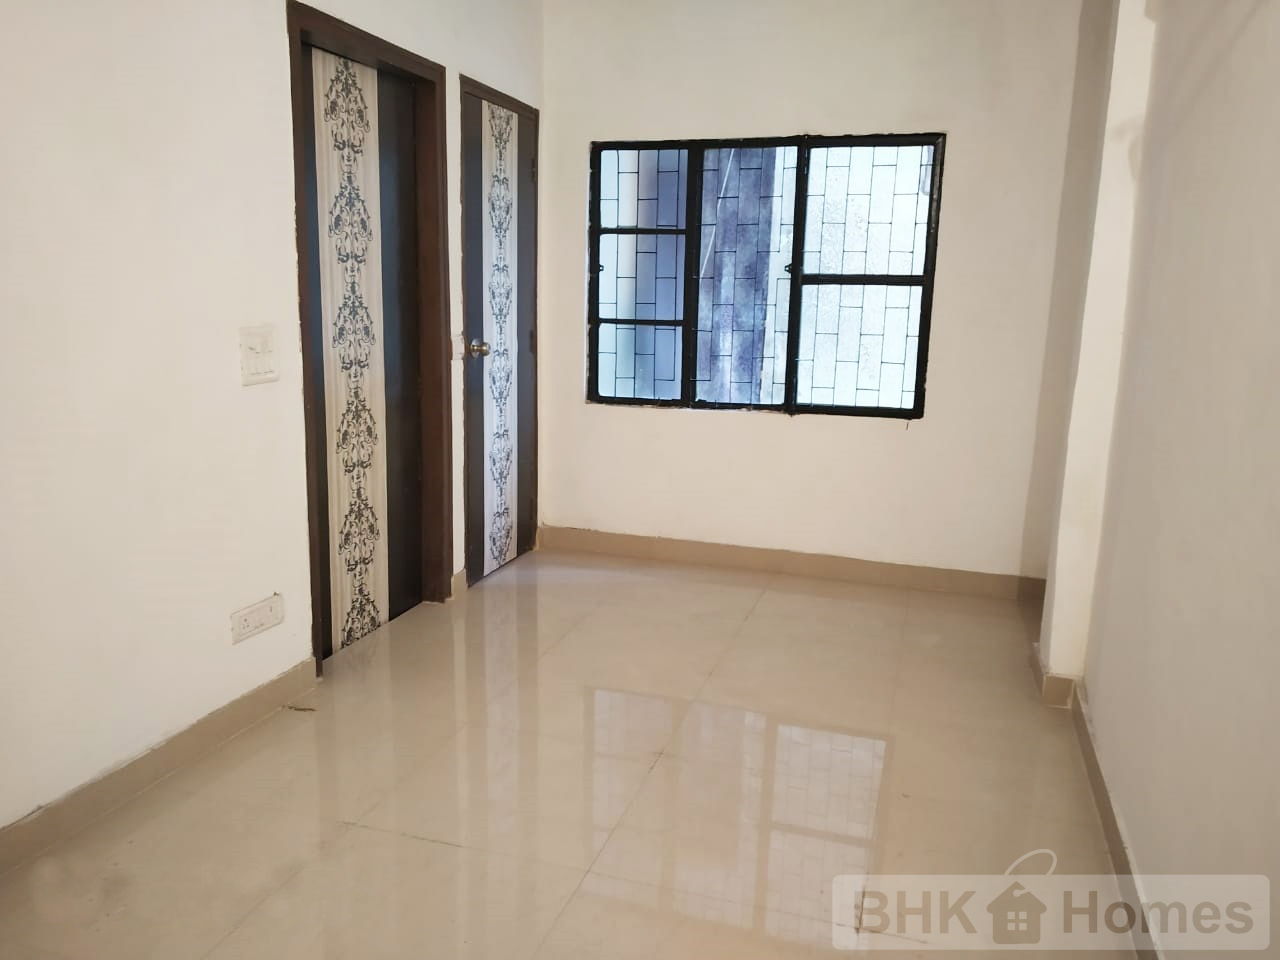 2 BHK Residential Apartment for Sale in Vishrantwadi